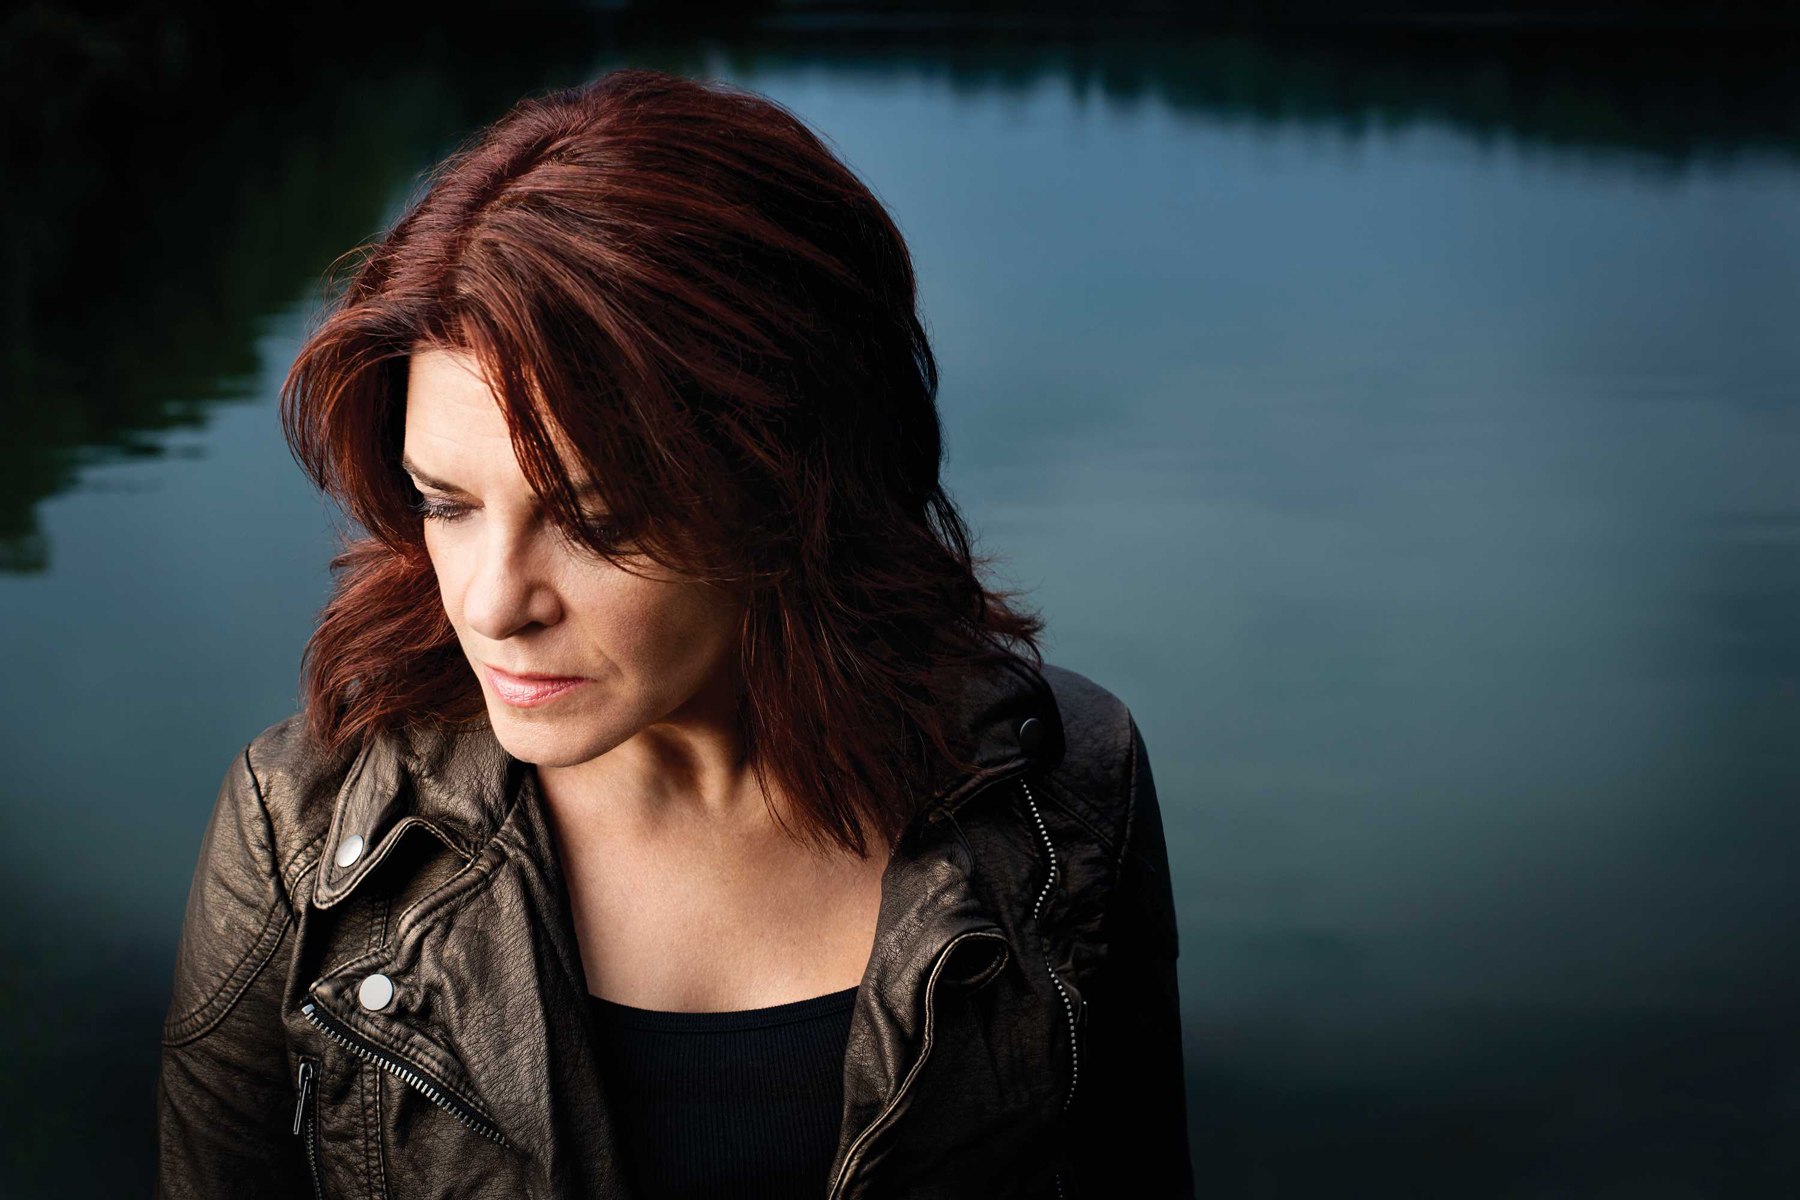 Review: Rosanne Cash Shows Why She's One of Our Most Ambitious Songwriters on 'She Remembers Everything'